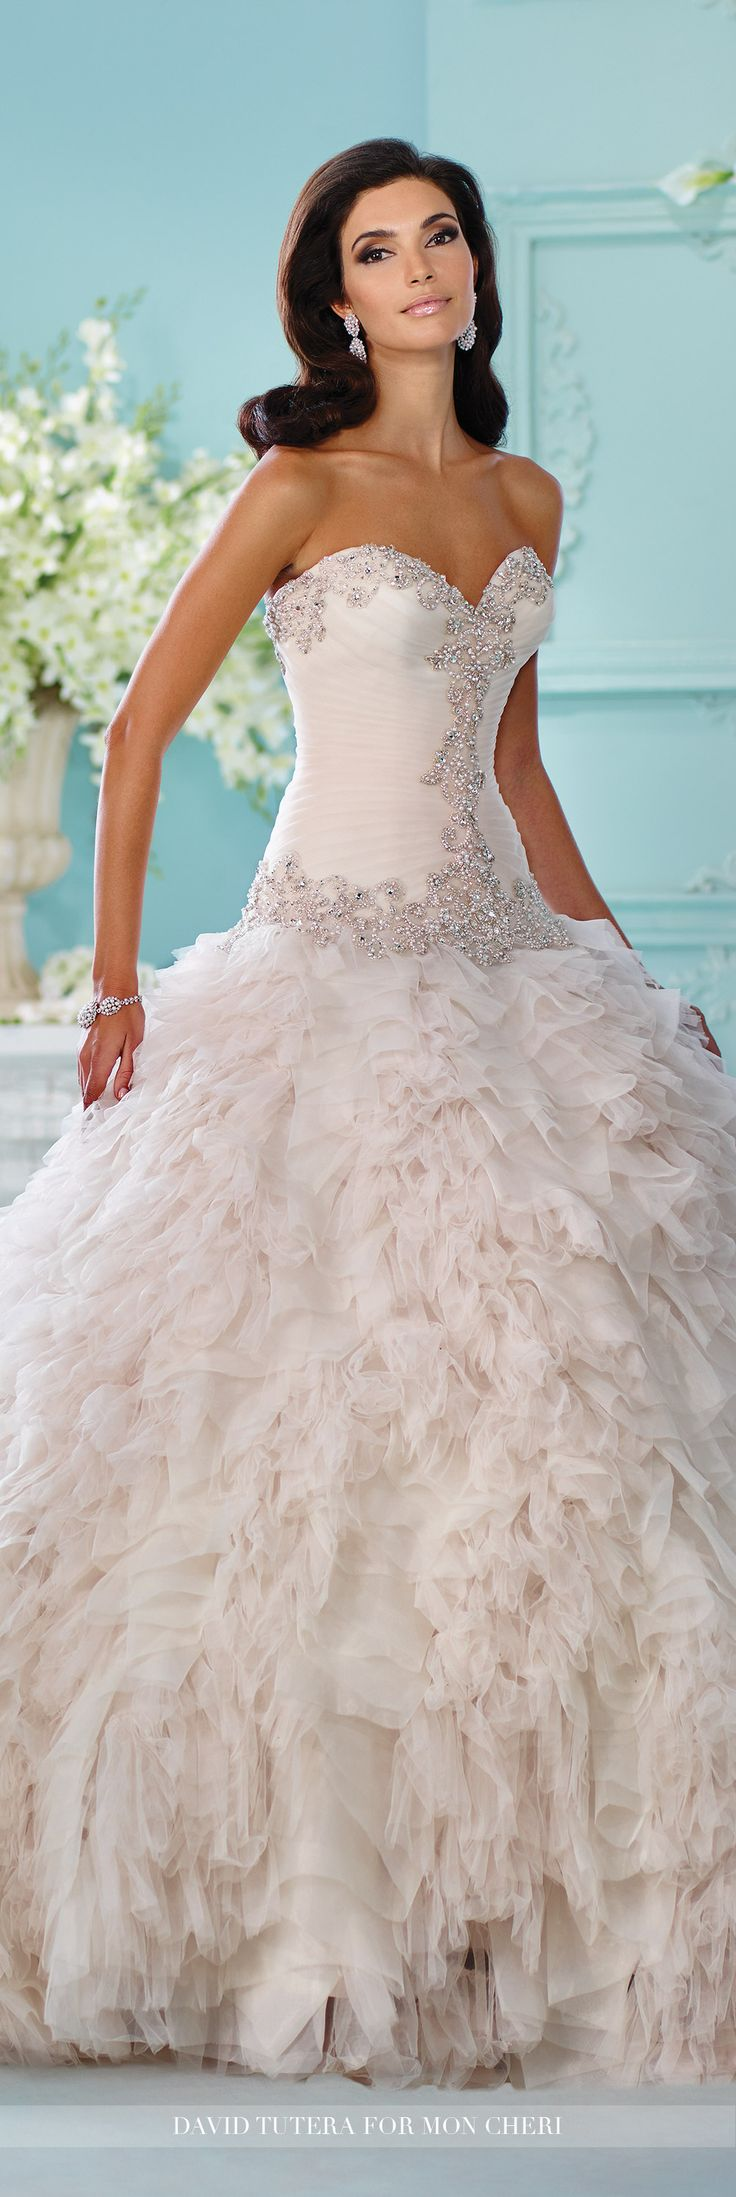 David Tutera for Mon Cheri - 216260 Meena - Strapless tulle and organza ball gown, sweetheart neckline and hand-pleated dropped waist bodice trimmed with metallic embroidery and rich jewel beaded motif, voluminous skirt with multiple layers of ruffled tulle and pleated organza, semi-cathedral length train detachable spaghetti and halter straps included.  Sizes: 0-20, 18W-26W  Pink Champagne, Ivory, White